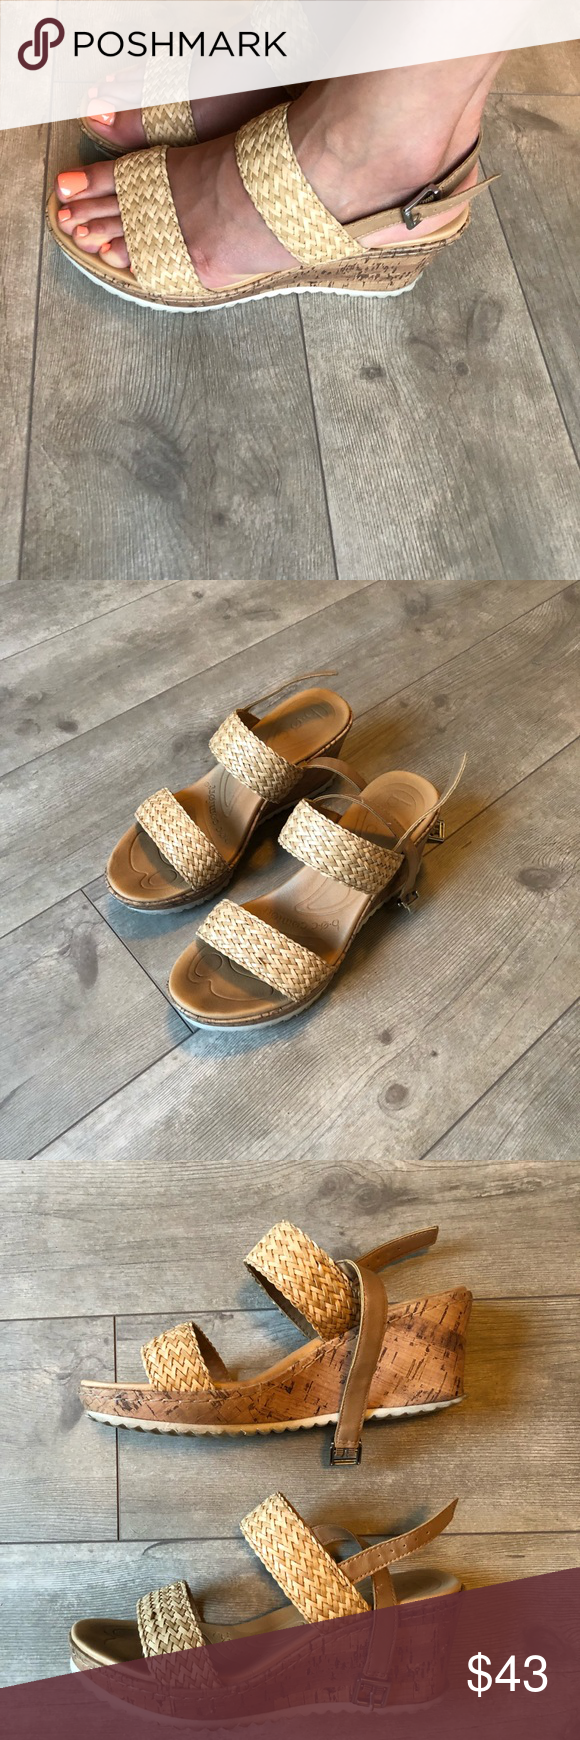 311af143553 B.О.C Remi wedge sandals Very comfortable sandals for summer